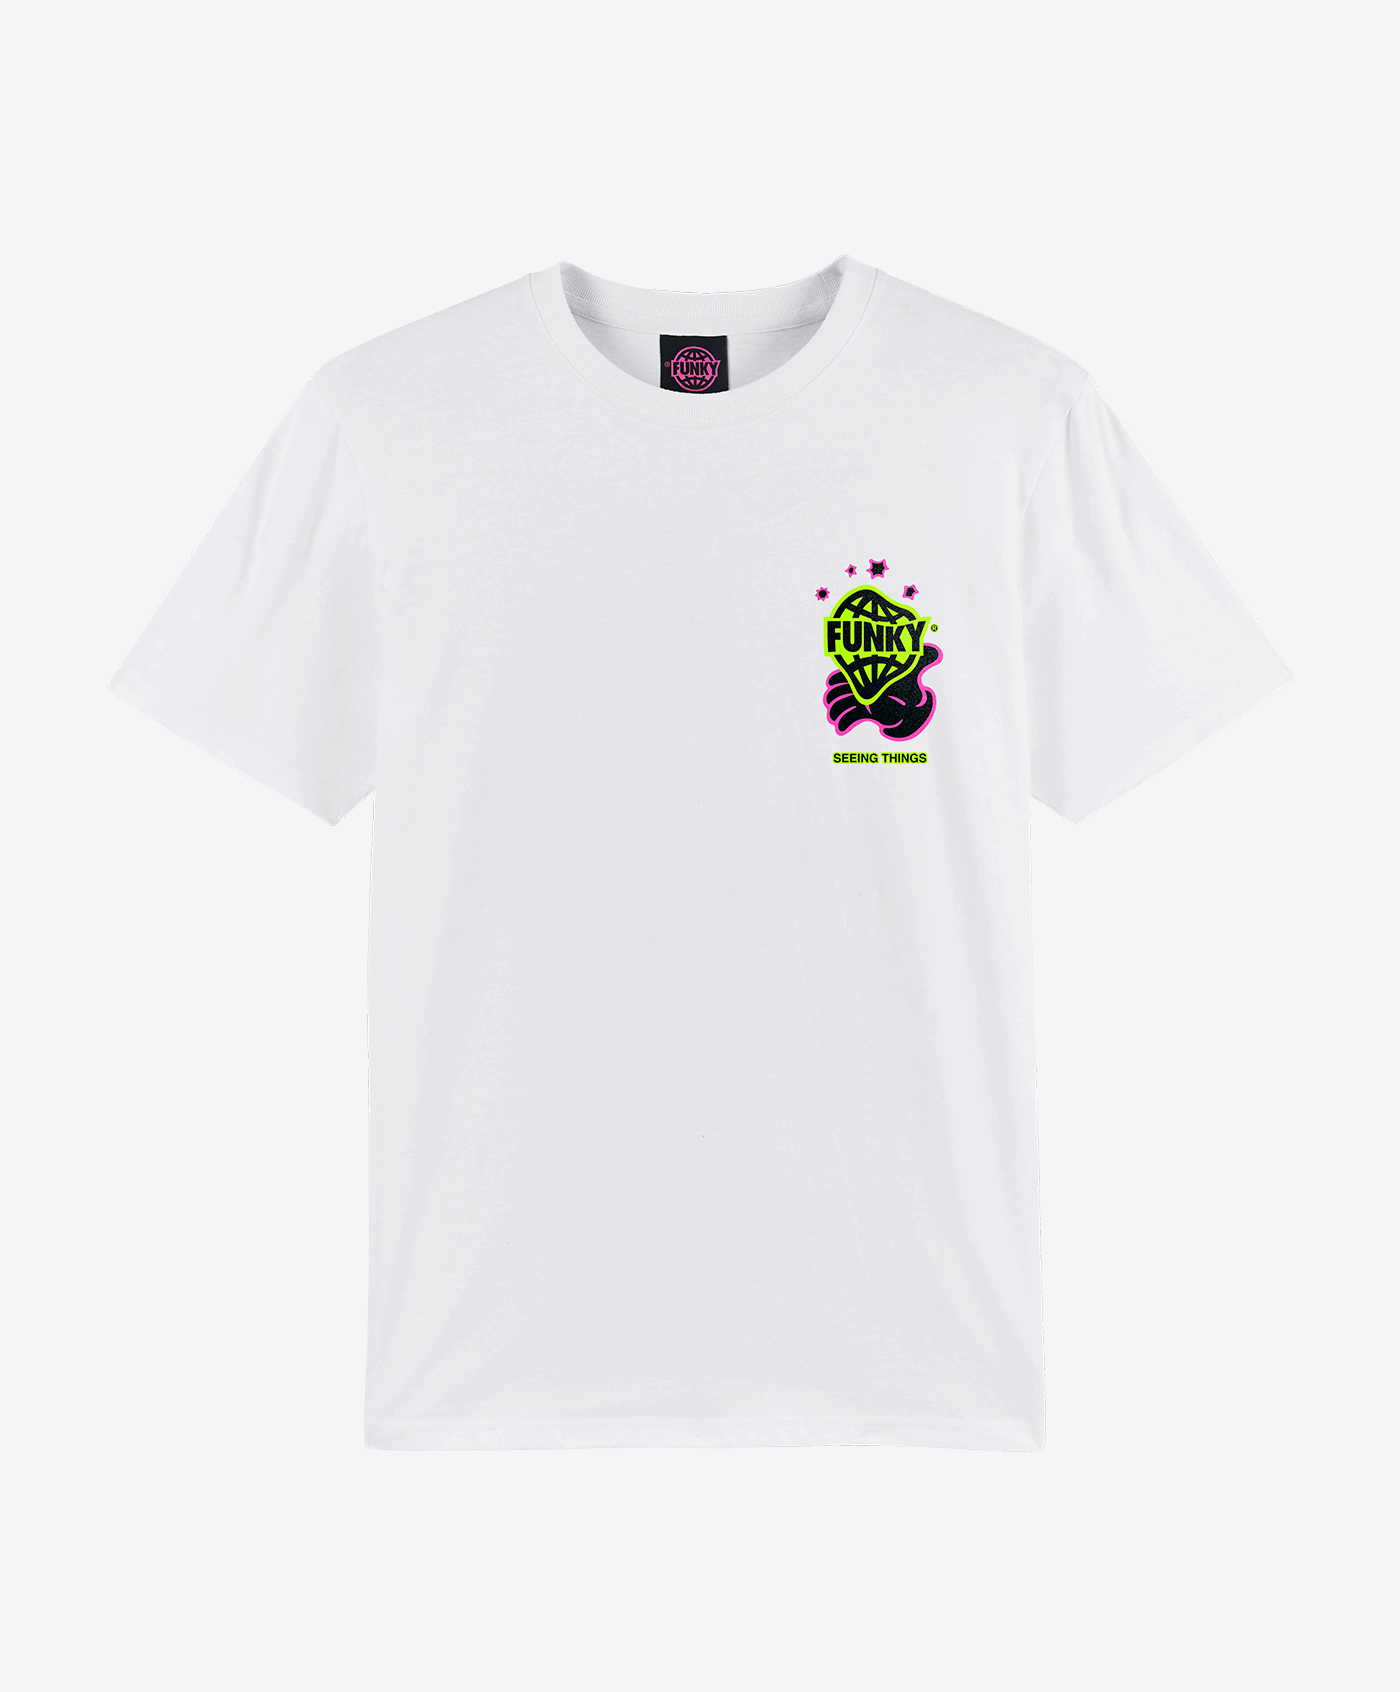 funky trip white tee front